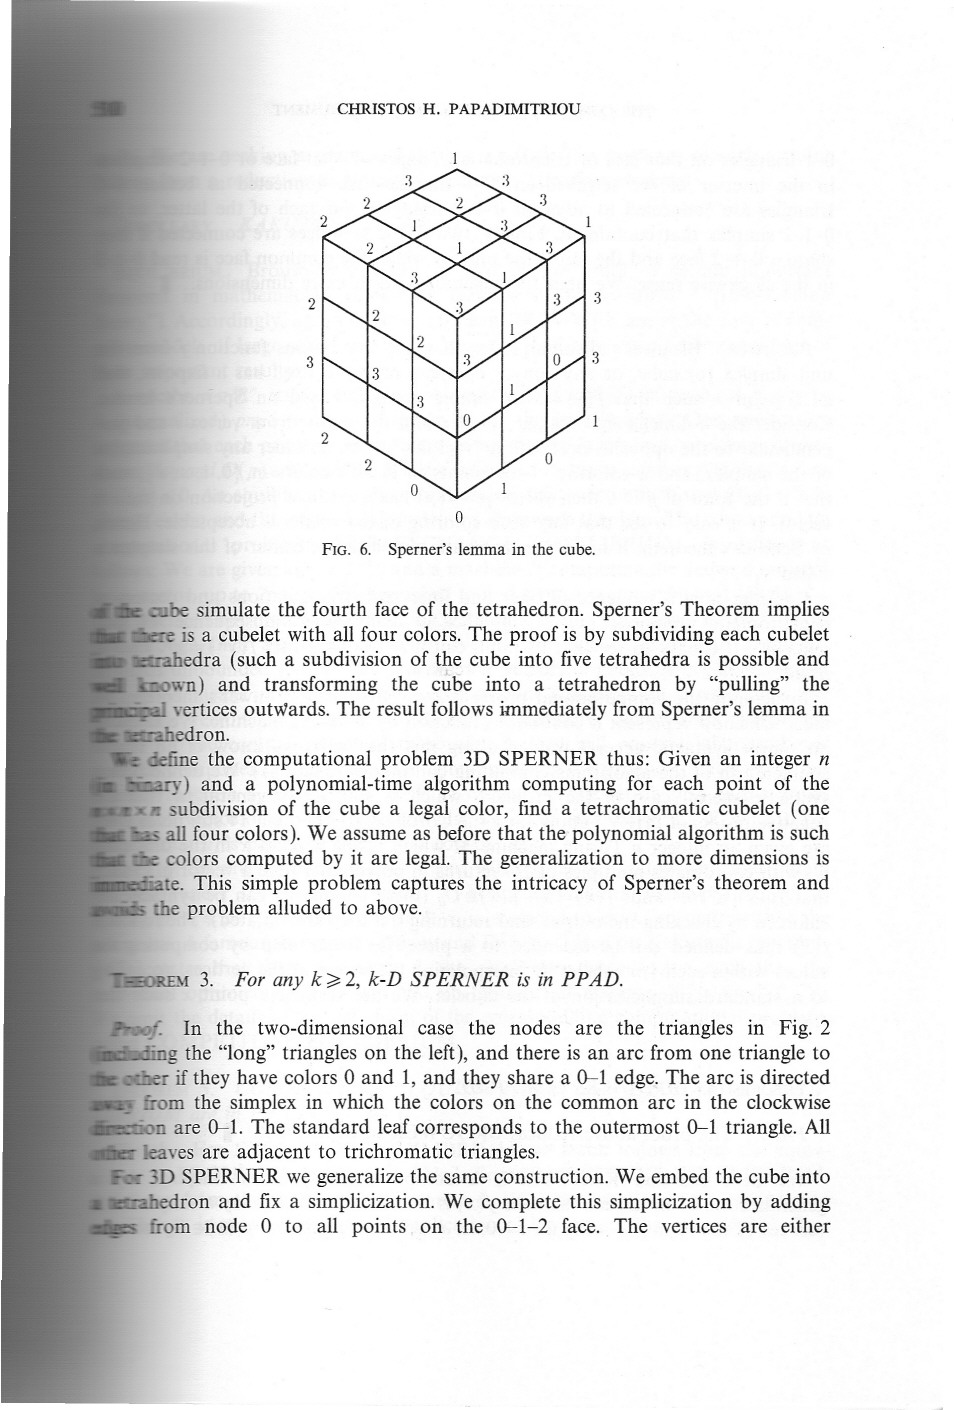 CHRISTOS H. PAPADIMITRIOU 2 3 3 3 0 FIG. 6. Sperner's lemma in the cube. * robe simulate the fourth face of the tetrahedron. Sperner's Theorem implies ~ is a cubelet with all four colors.